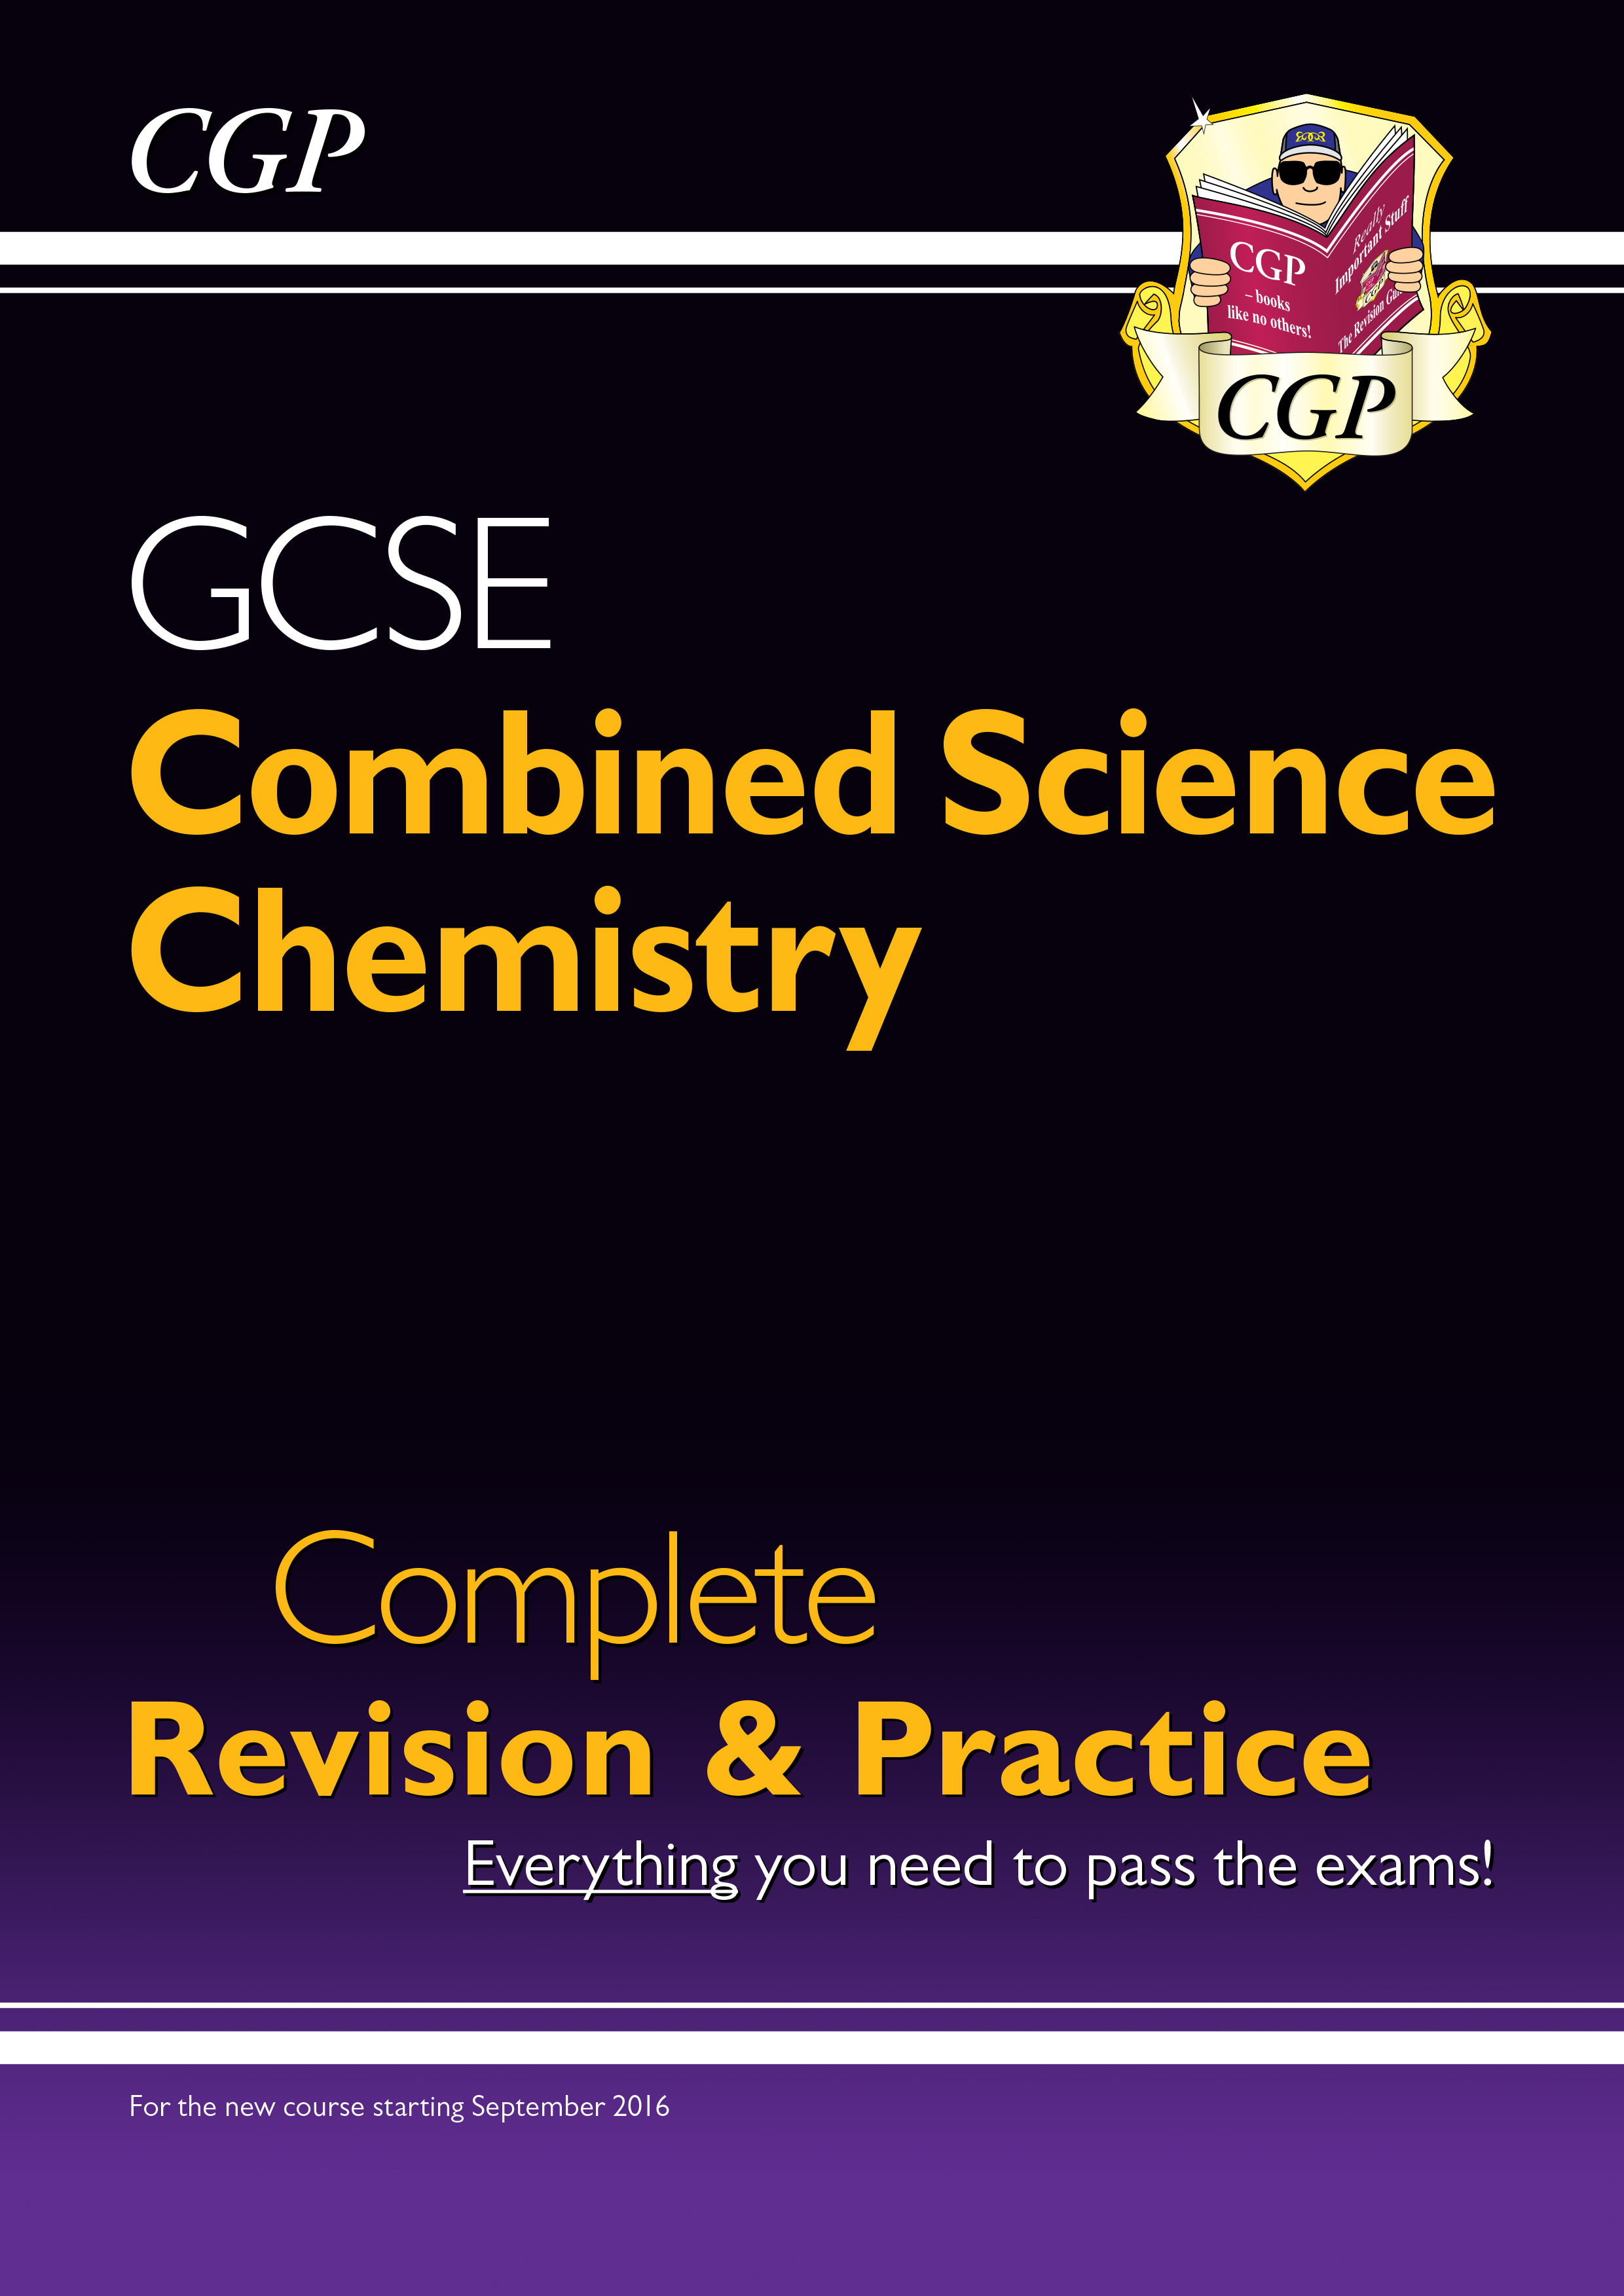 SCCS41DK - New Grade 9-1 GCSE Combined Science: Chemistry Complete Revision & Practice